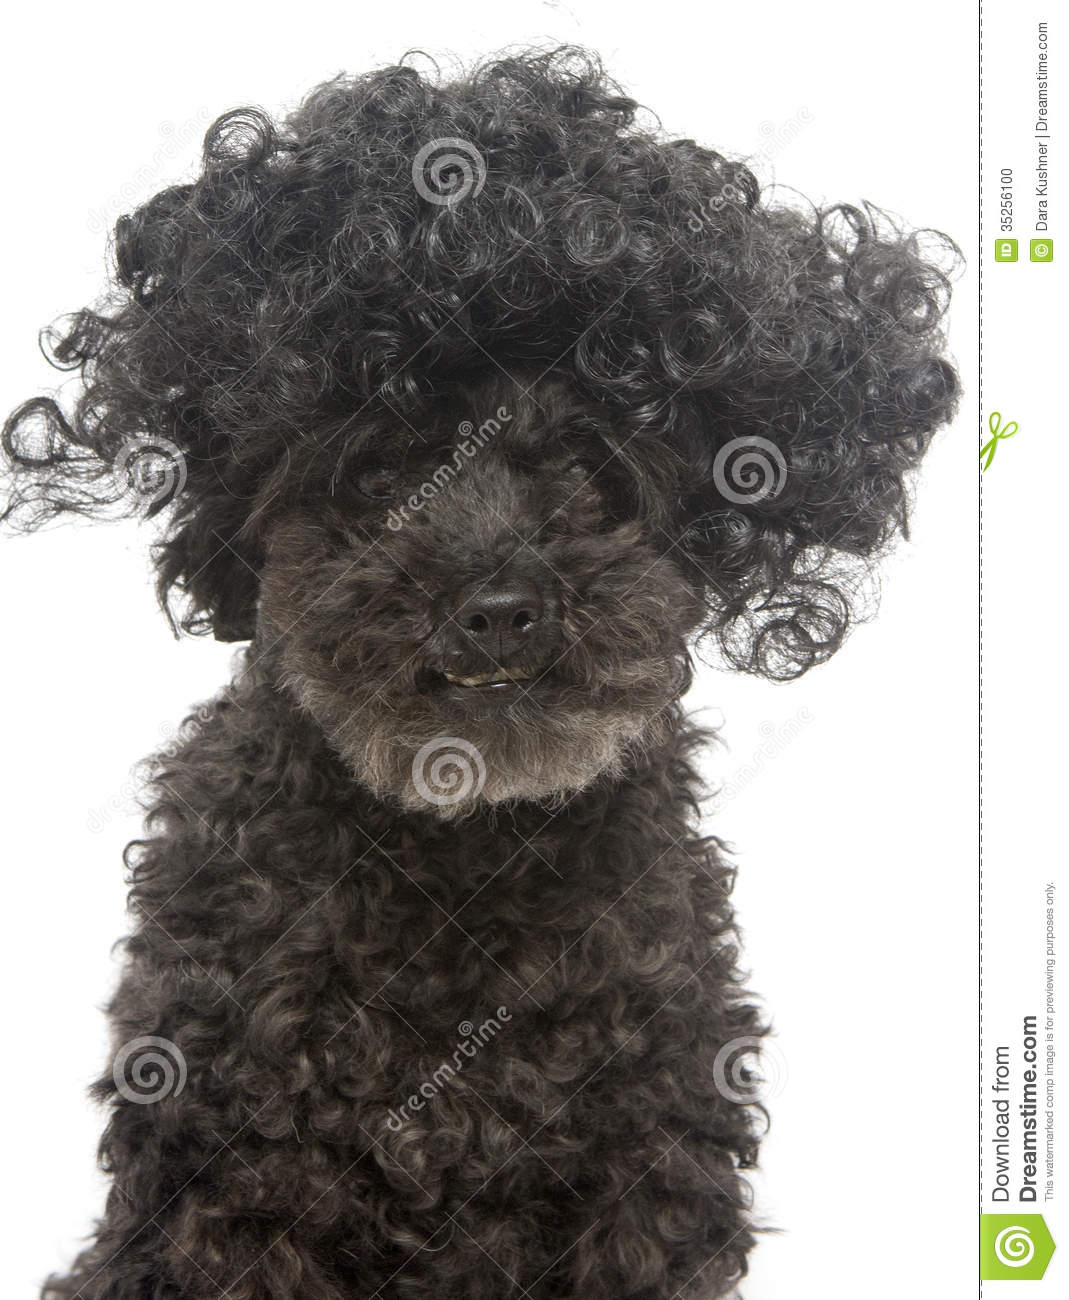 Poodle With Very Curly Hair Stock Photo Image Of